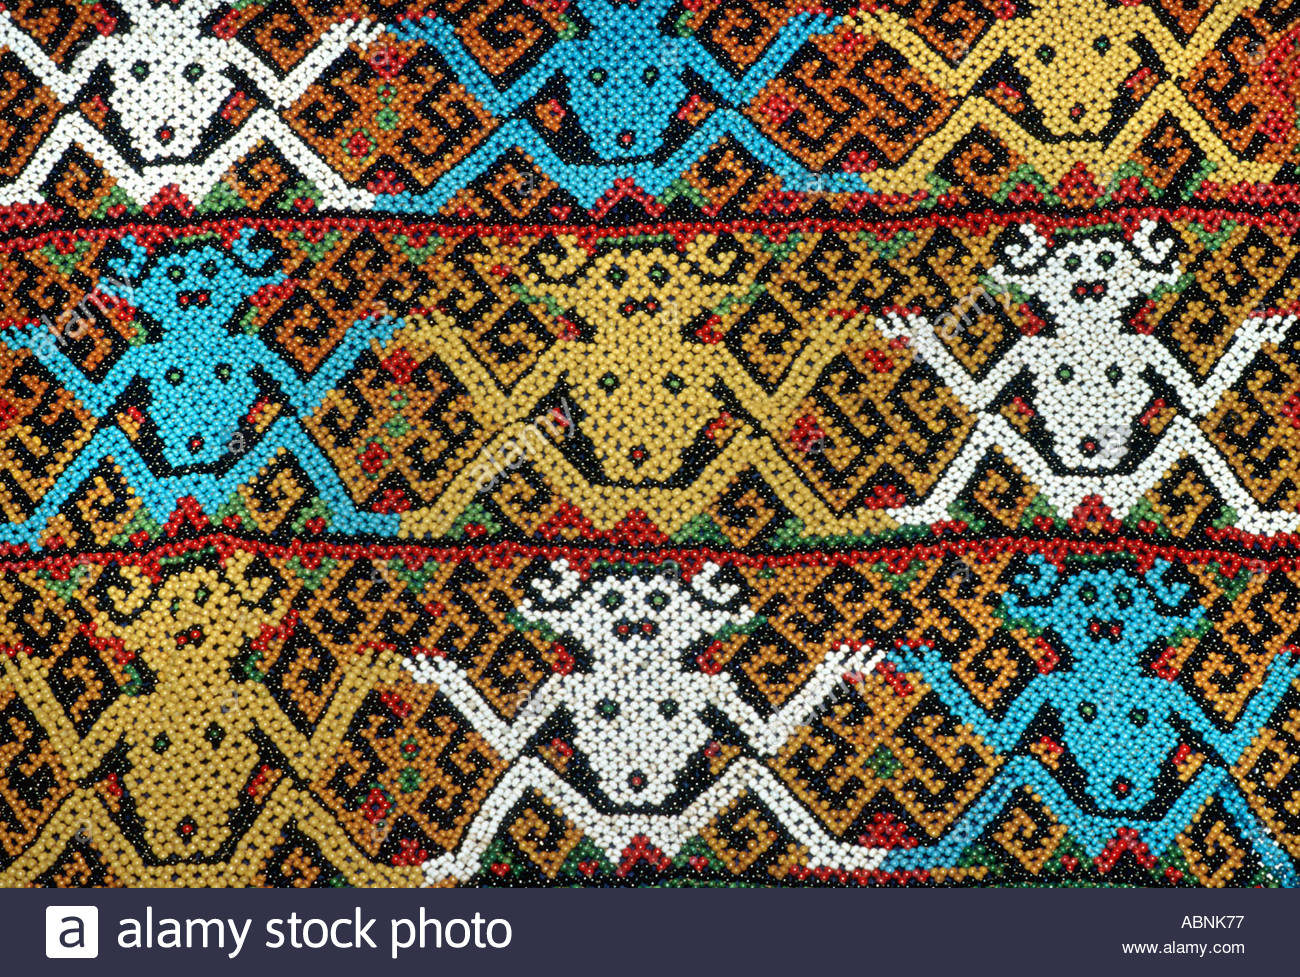 Beadwork textile depicting anthropomorphic motifs Decorating a baby carrier from Borneo Iban people of Kalimantan Stock Photo